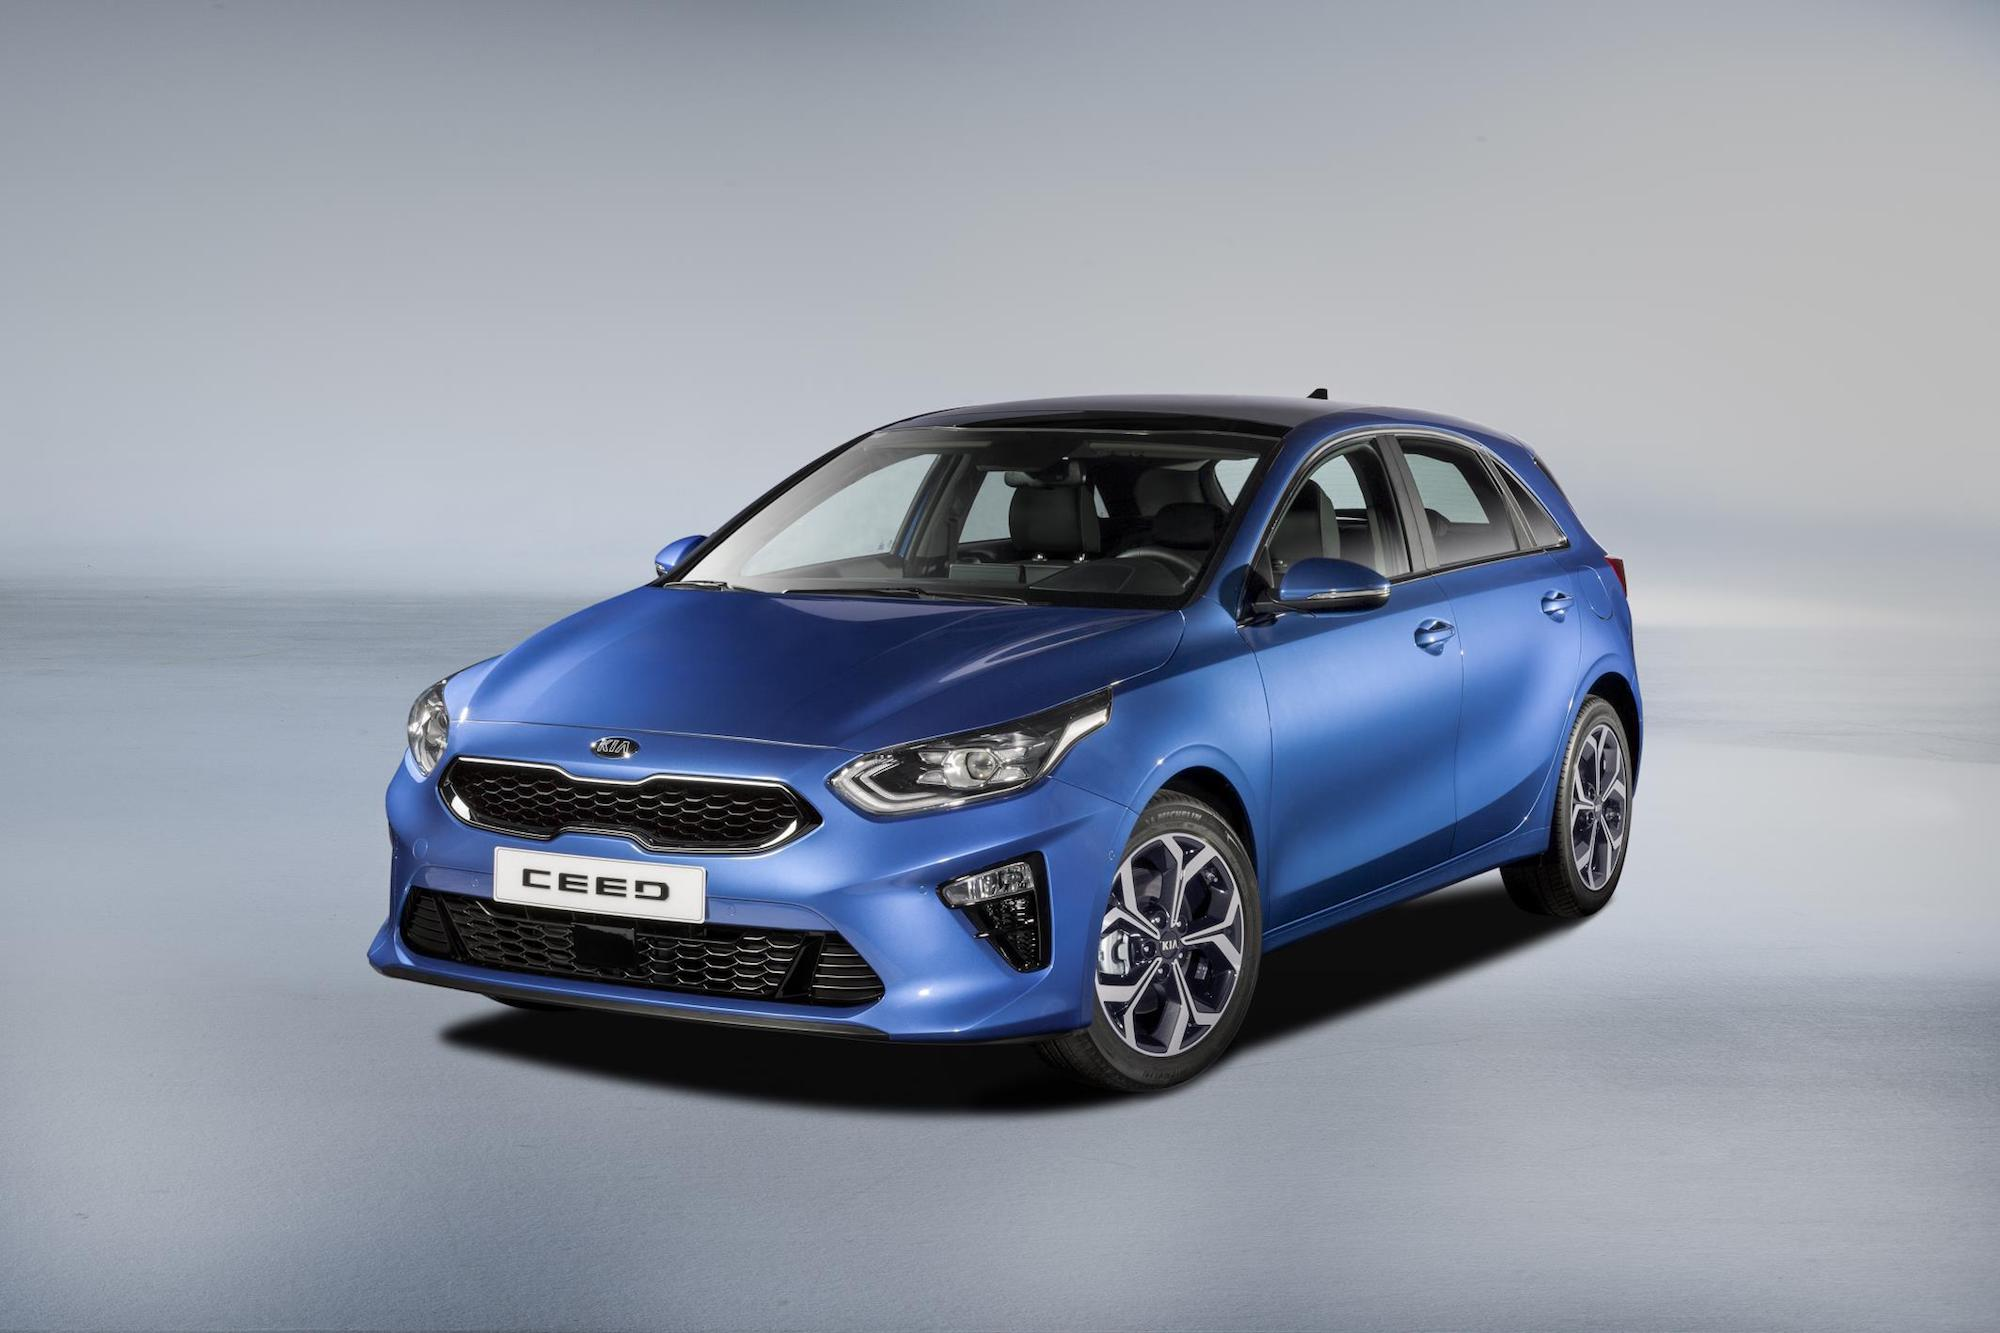 New Kia Ceed to feature self-driving technology